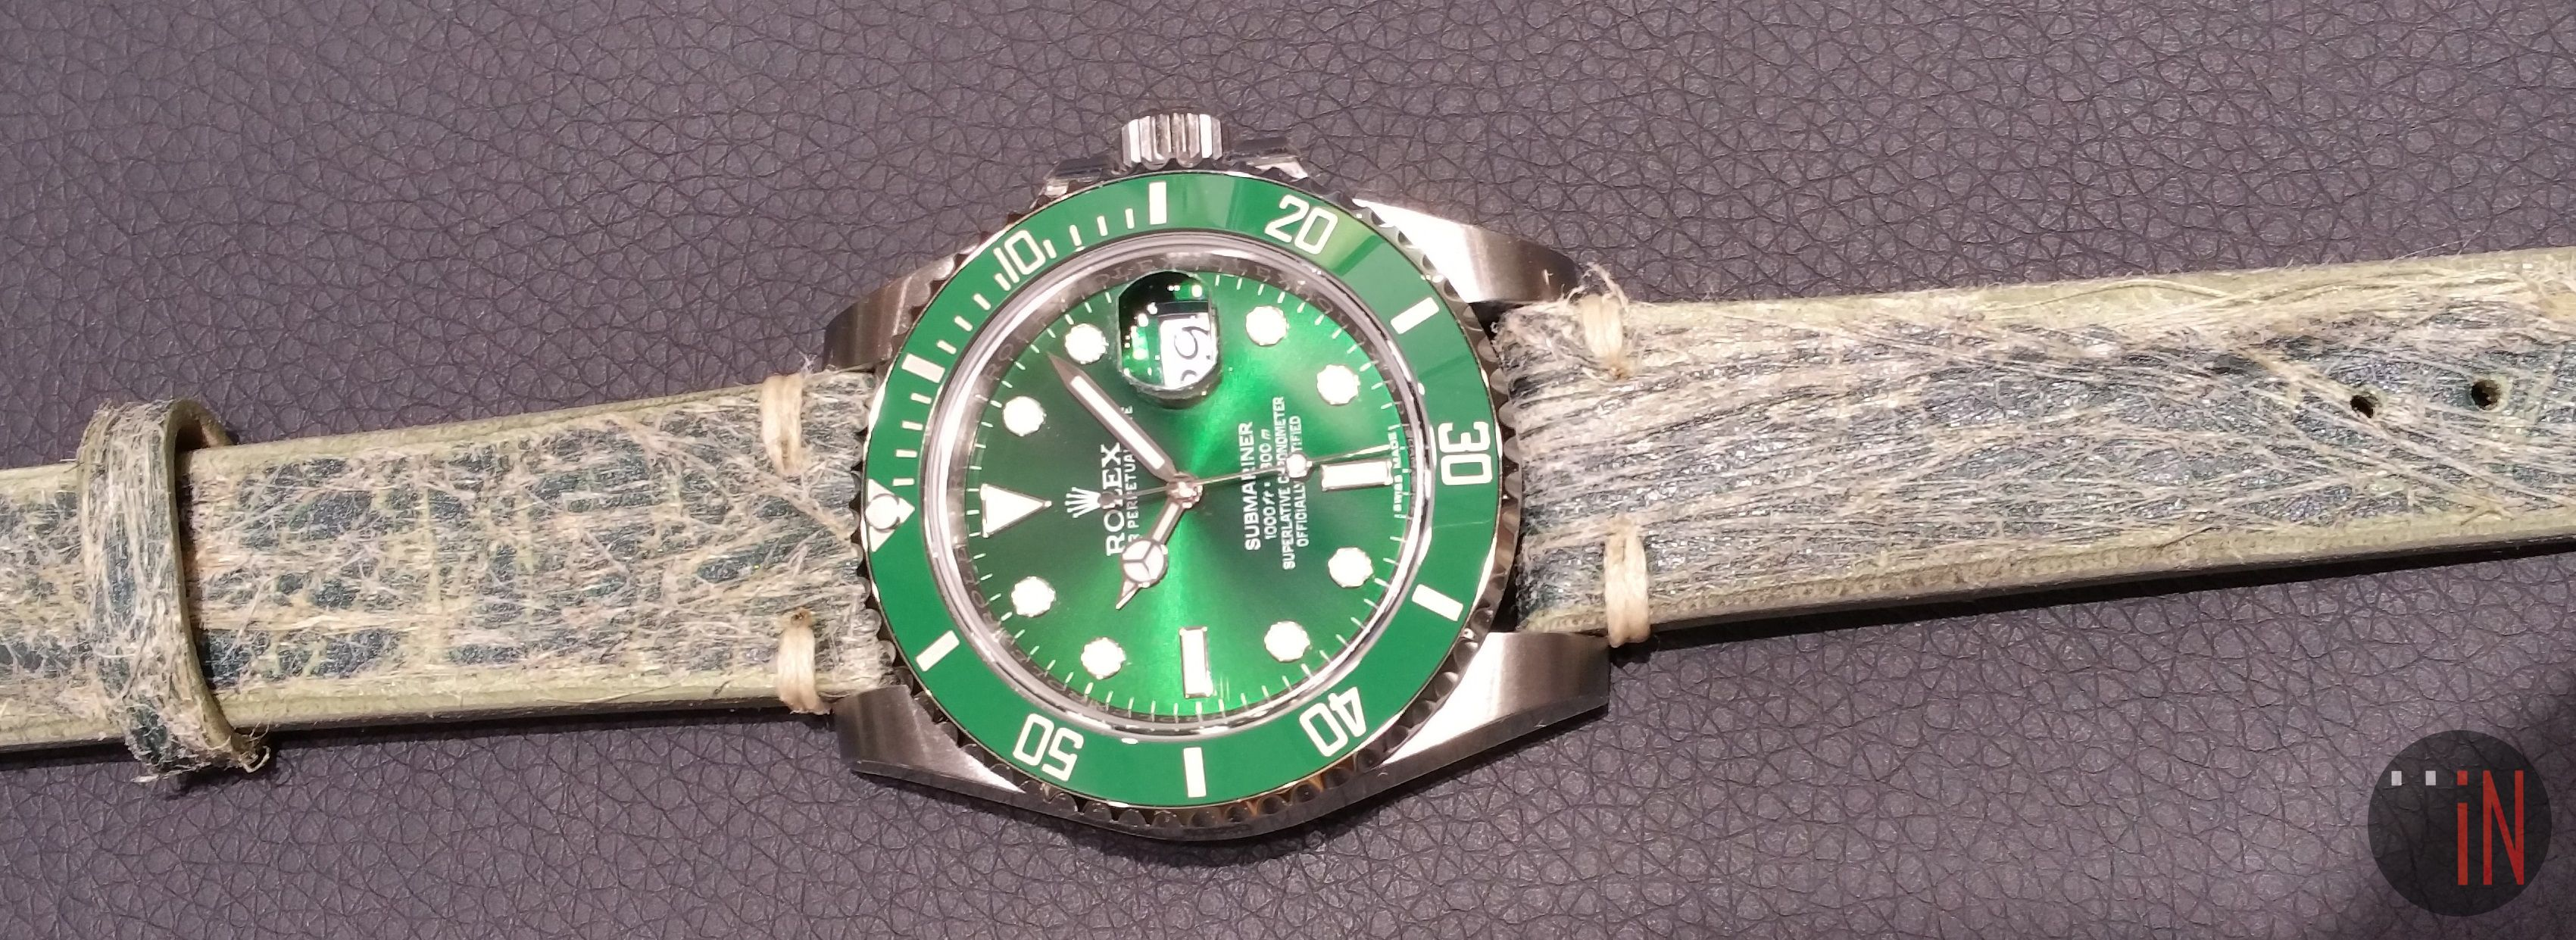 Pin by Element iN Time Watches on ROLEX Watches